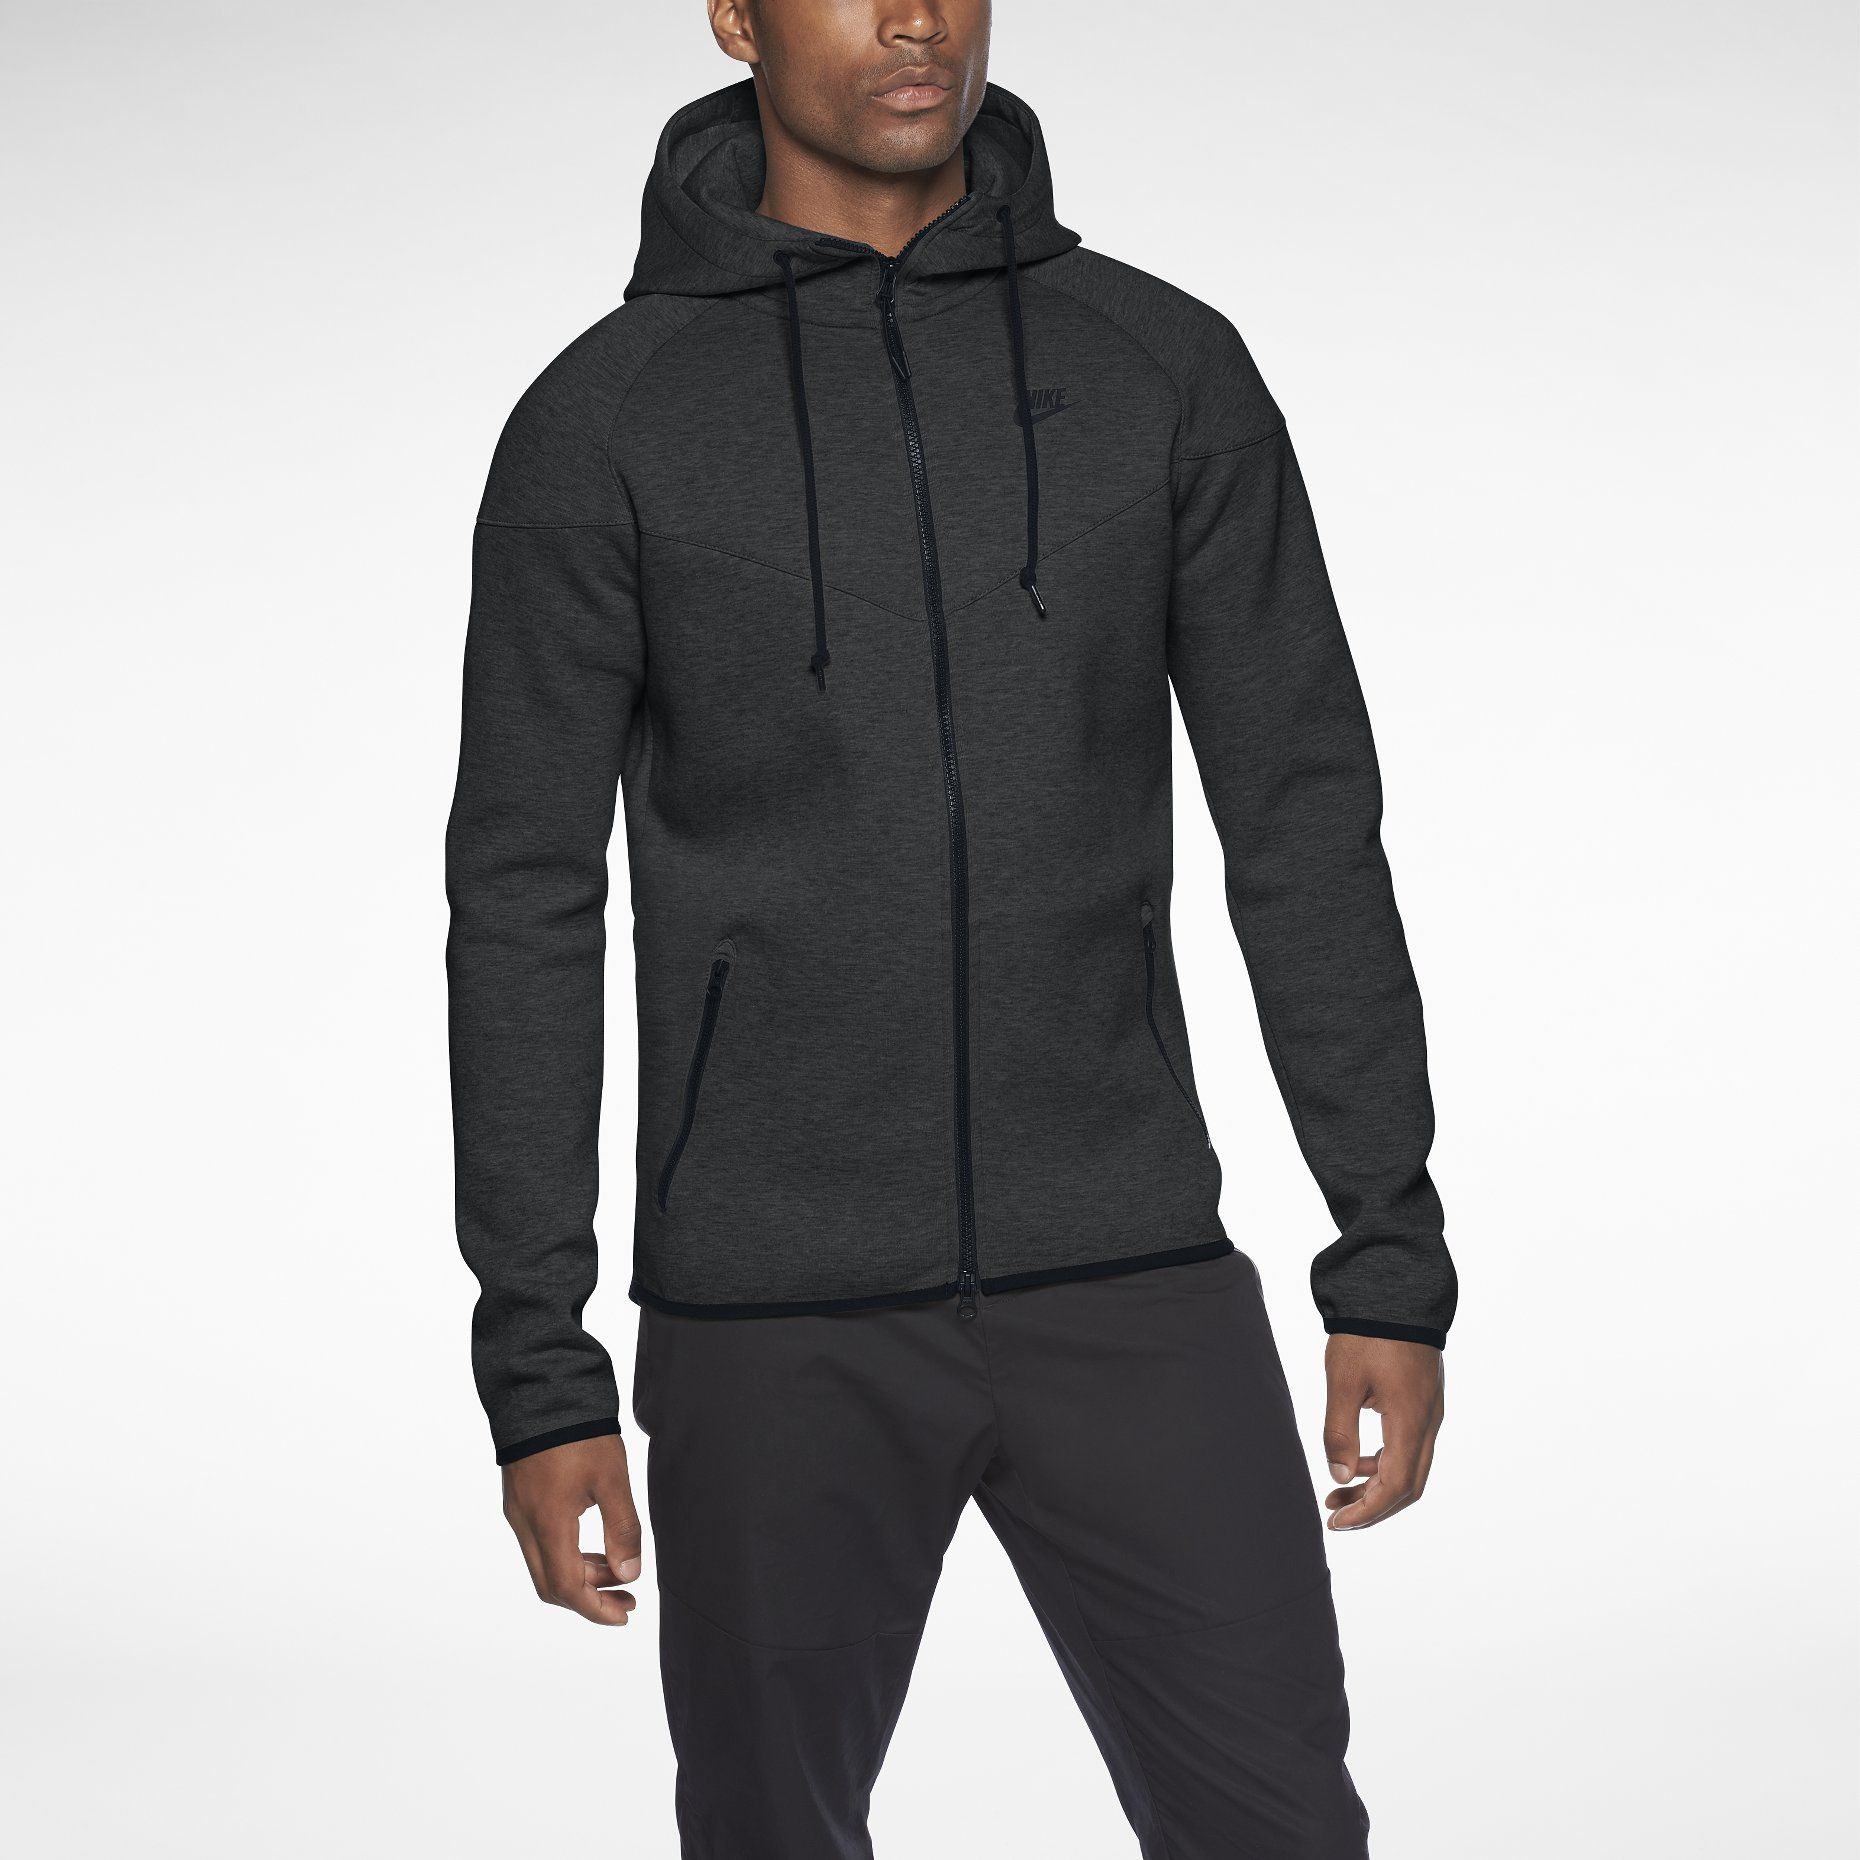 Nike Store. Nike Tech Fleece Windrunner Men's Hoodie Men